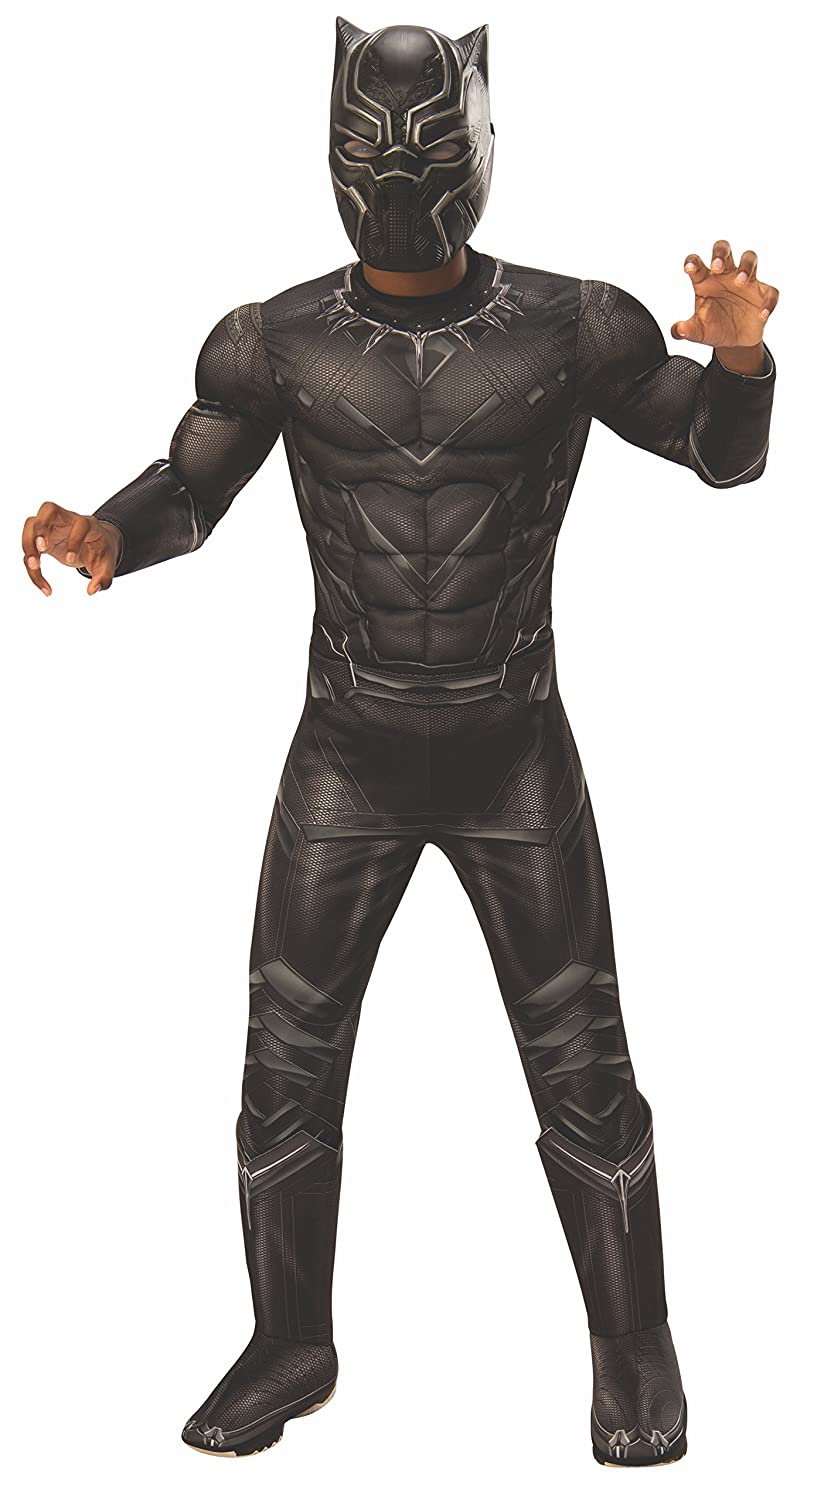 Rubies Costume Captain America: Civil War Deluxe Black Panther Costume, Small